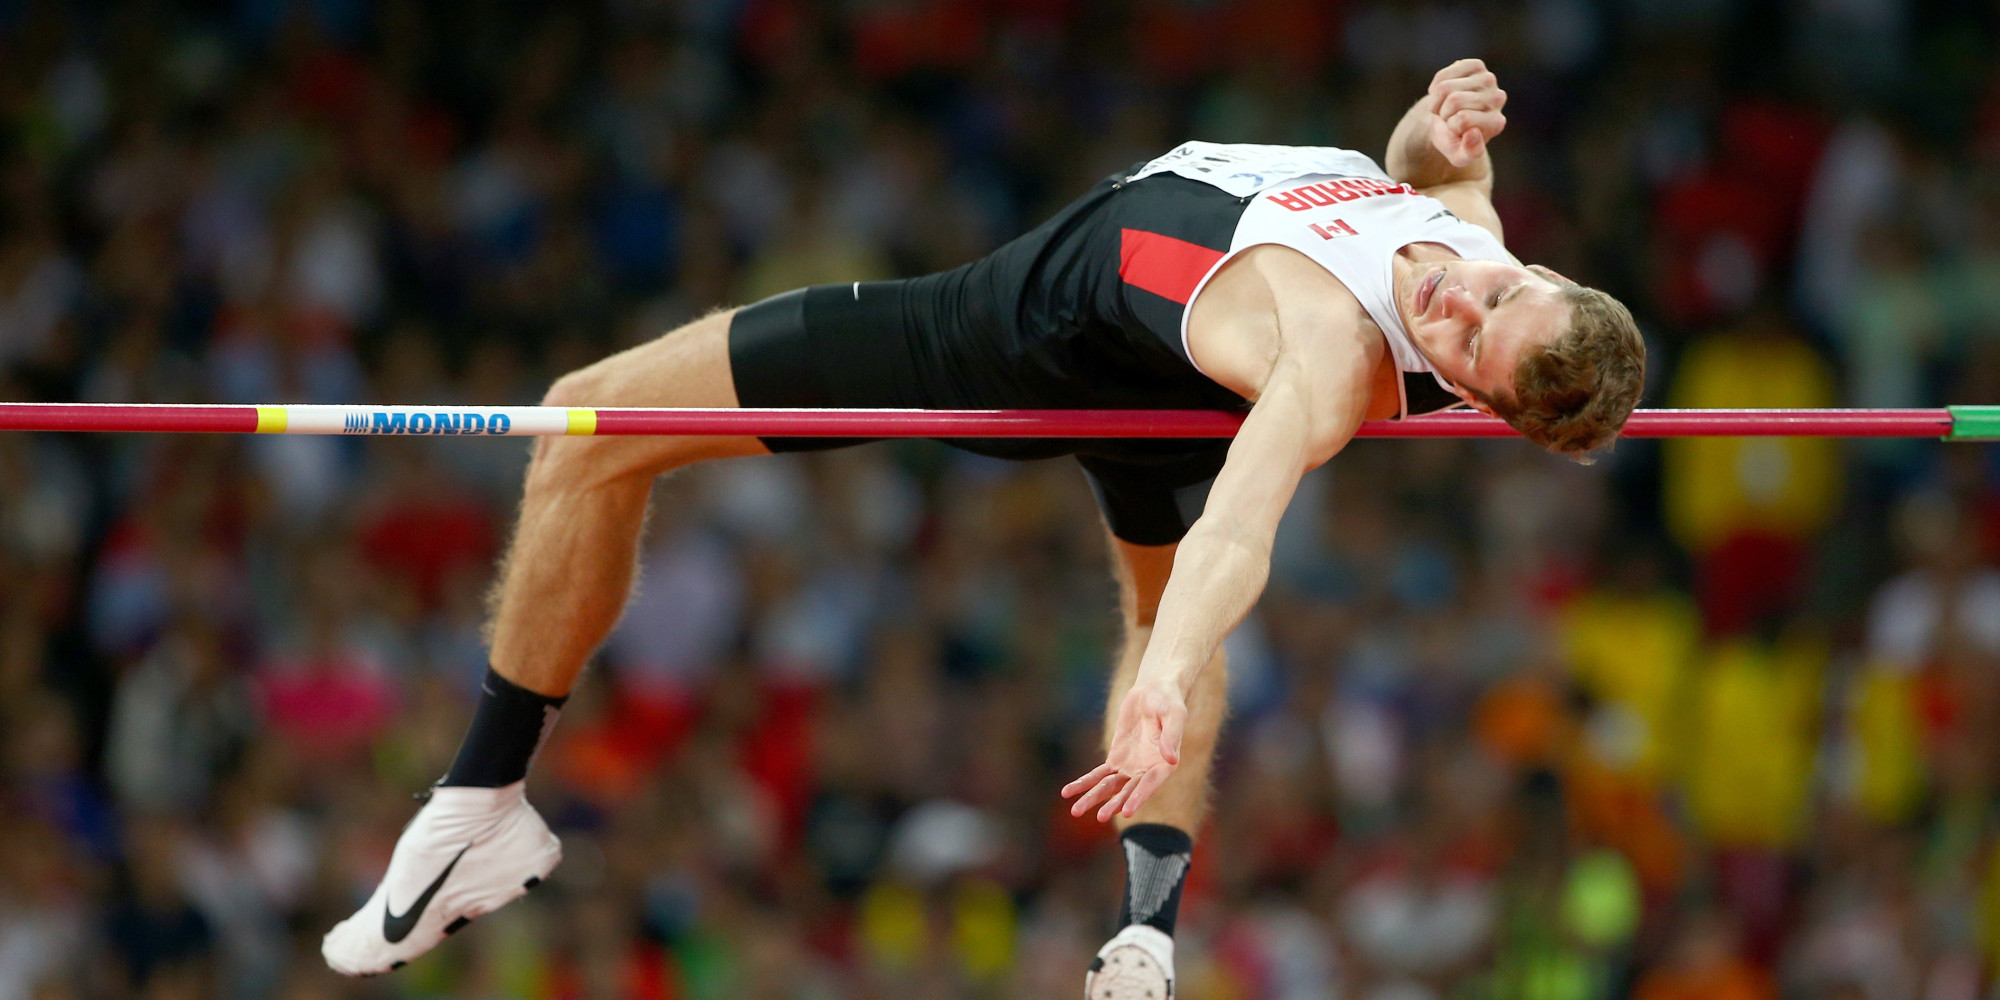 Canada Wins Gold In High Jump At World Championships